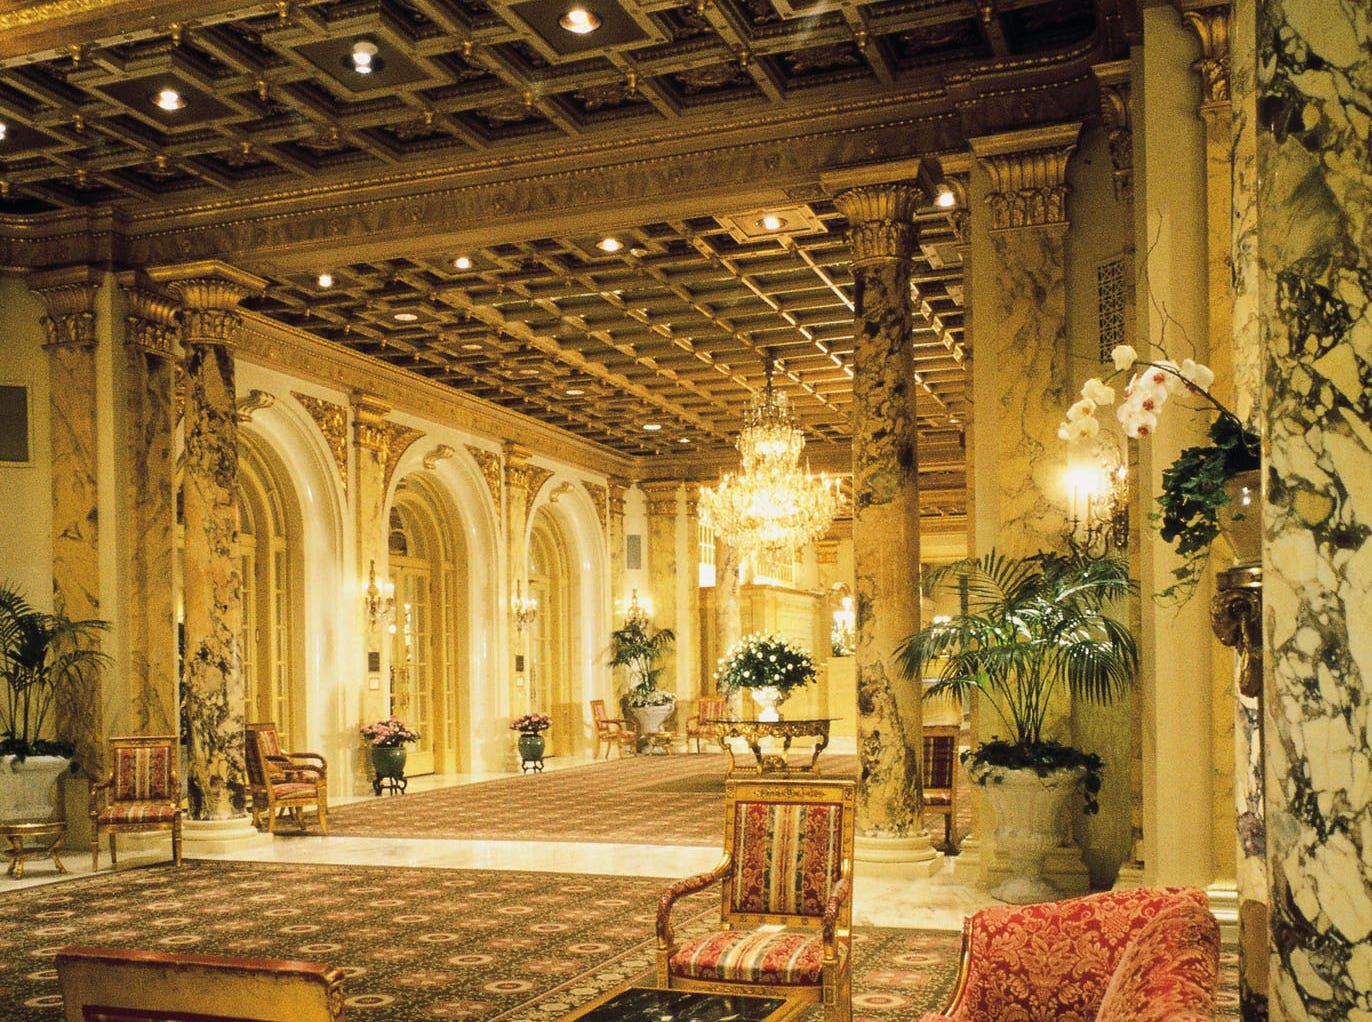 The lobby and sitting area at The Fairmont Copley Plaza in Boston invite guests to sink in and look up.